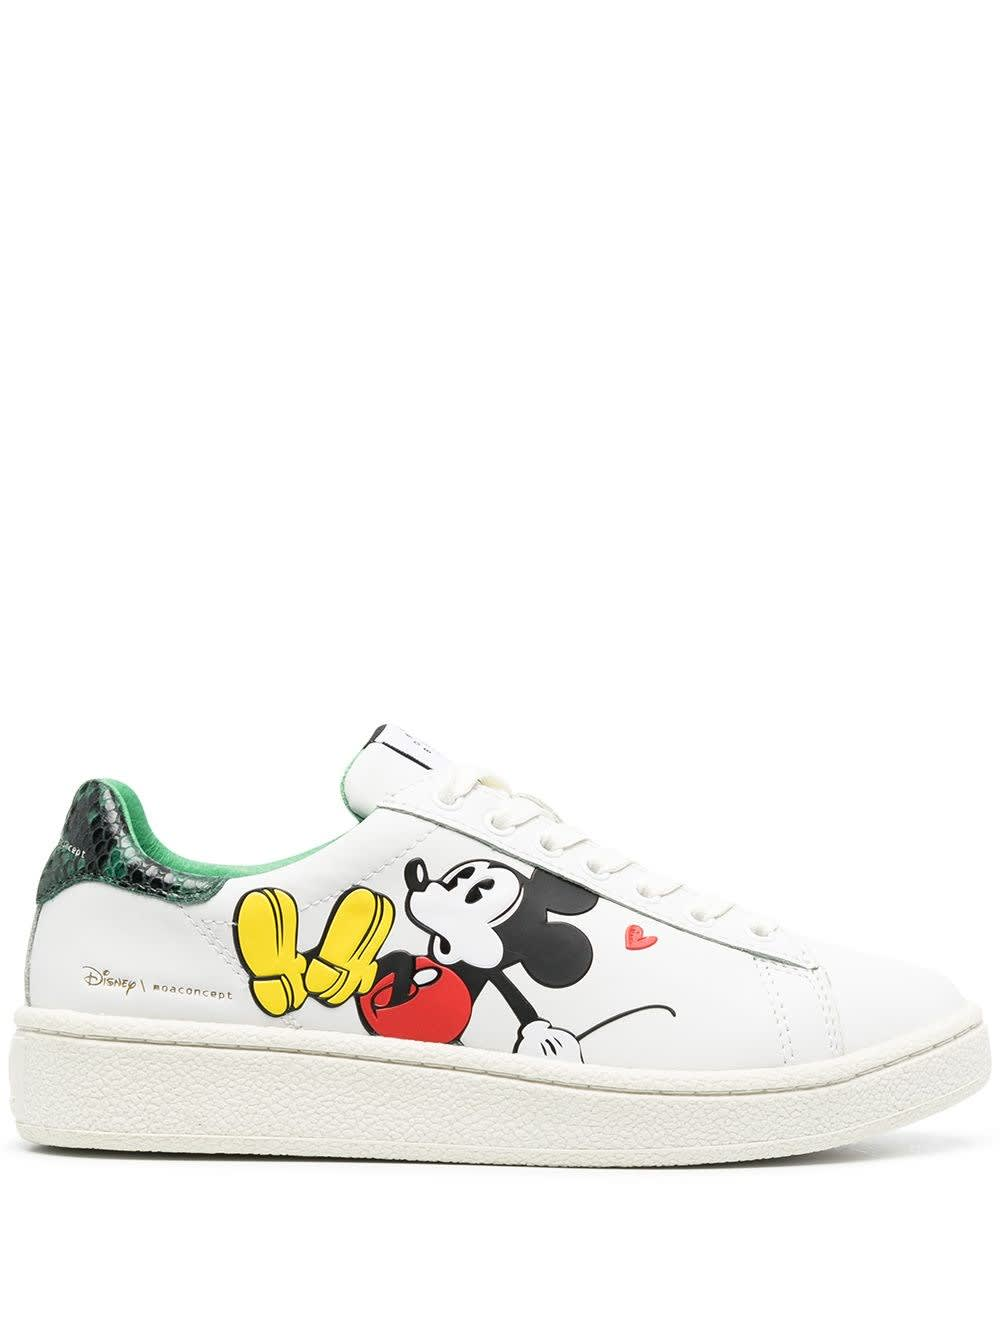 Moa Master Of Arts Leathers LEATHER SNEAKERS WITH MICKEY MOUSE PRINT